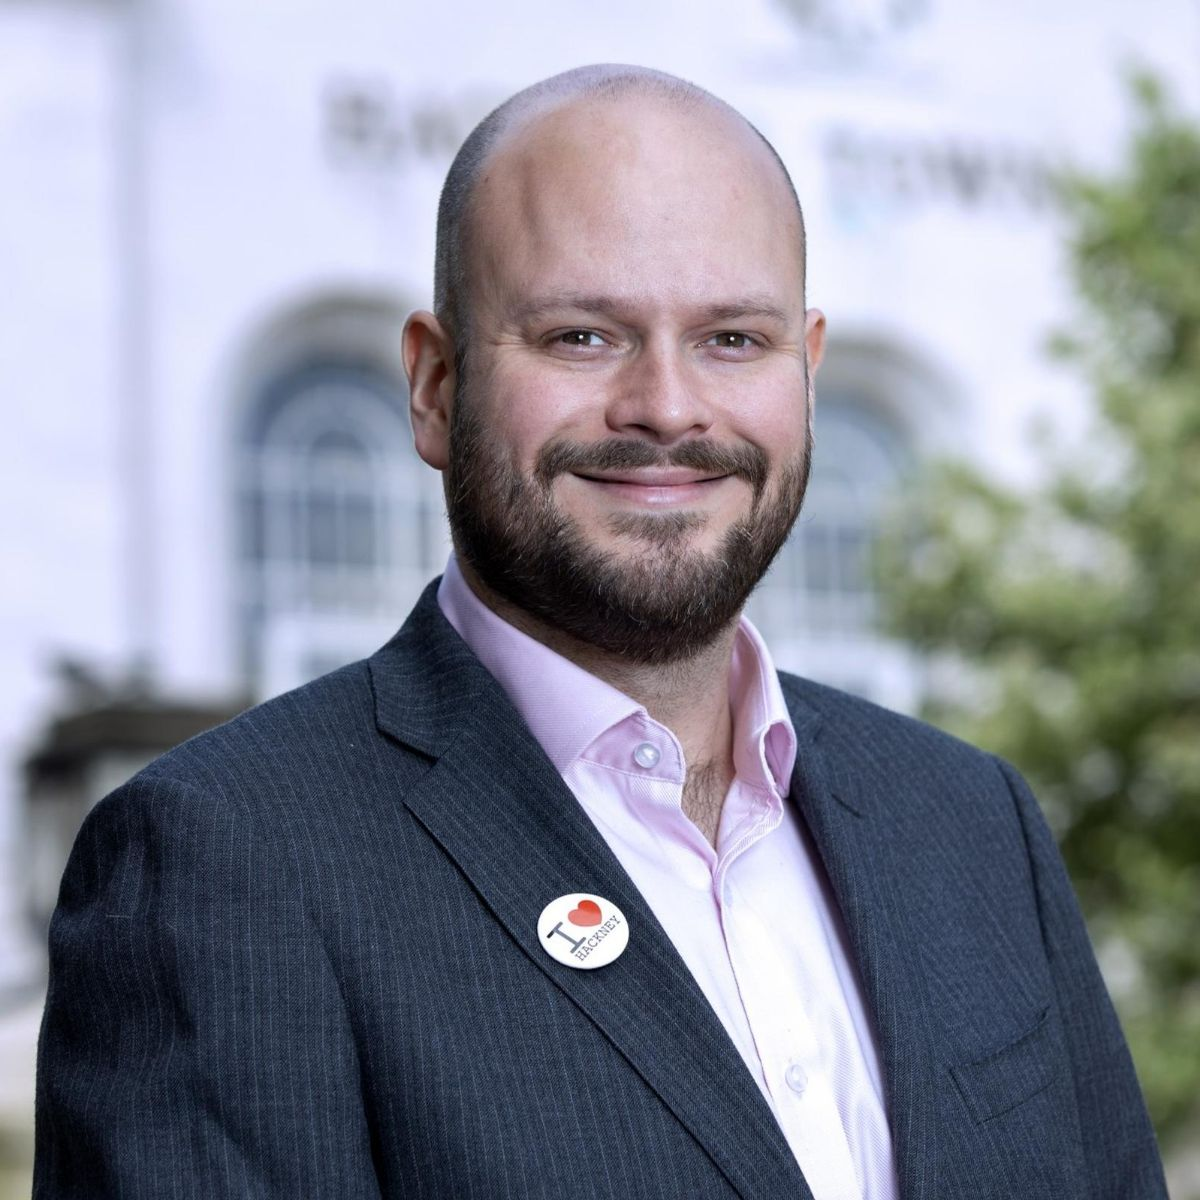 Mayor of Hackney Philip Glanville, chair of London Councils' Transport and Environment Committee (TEC)